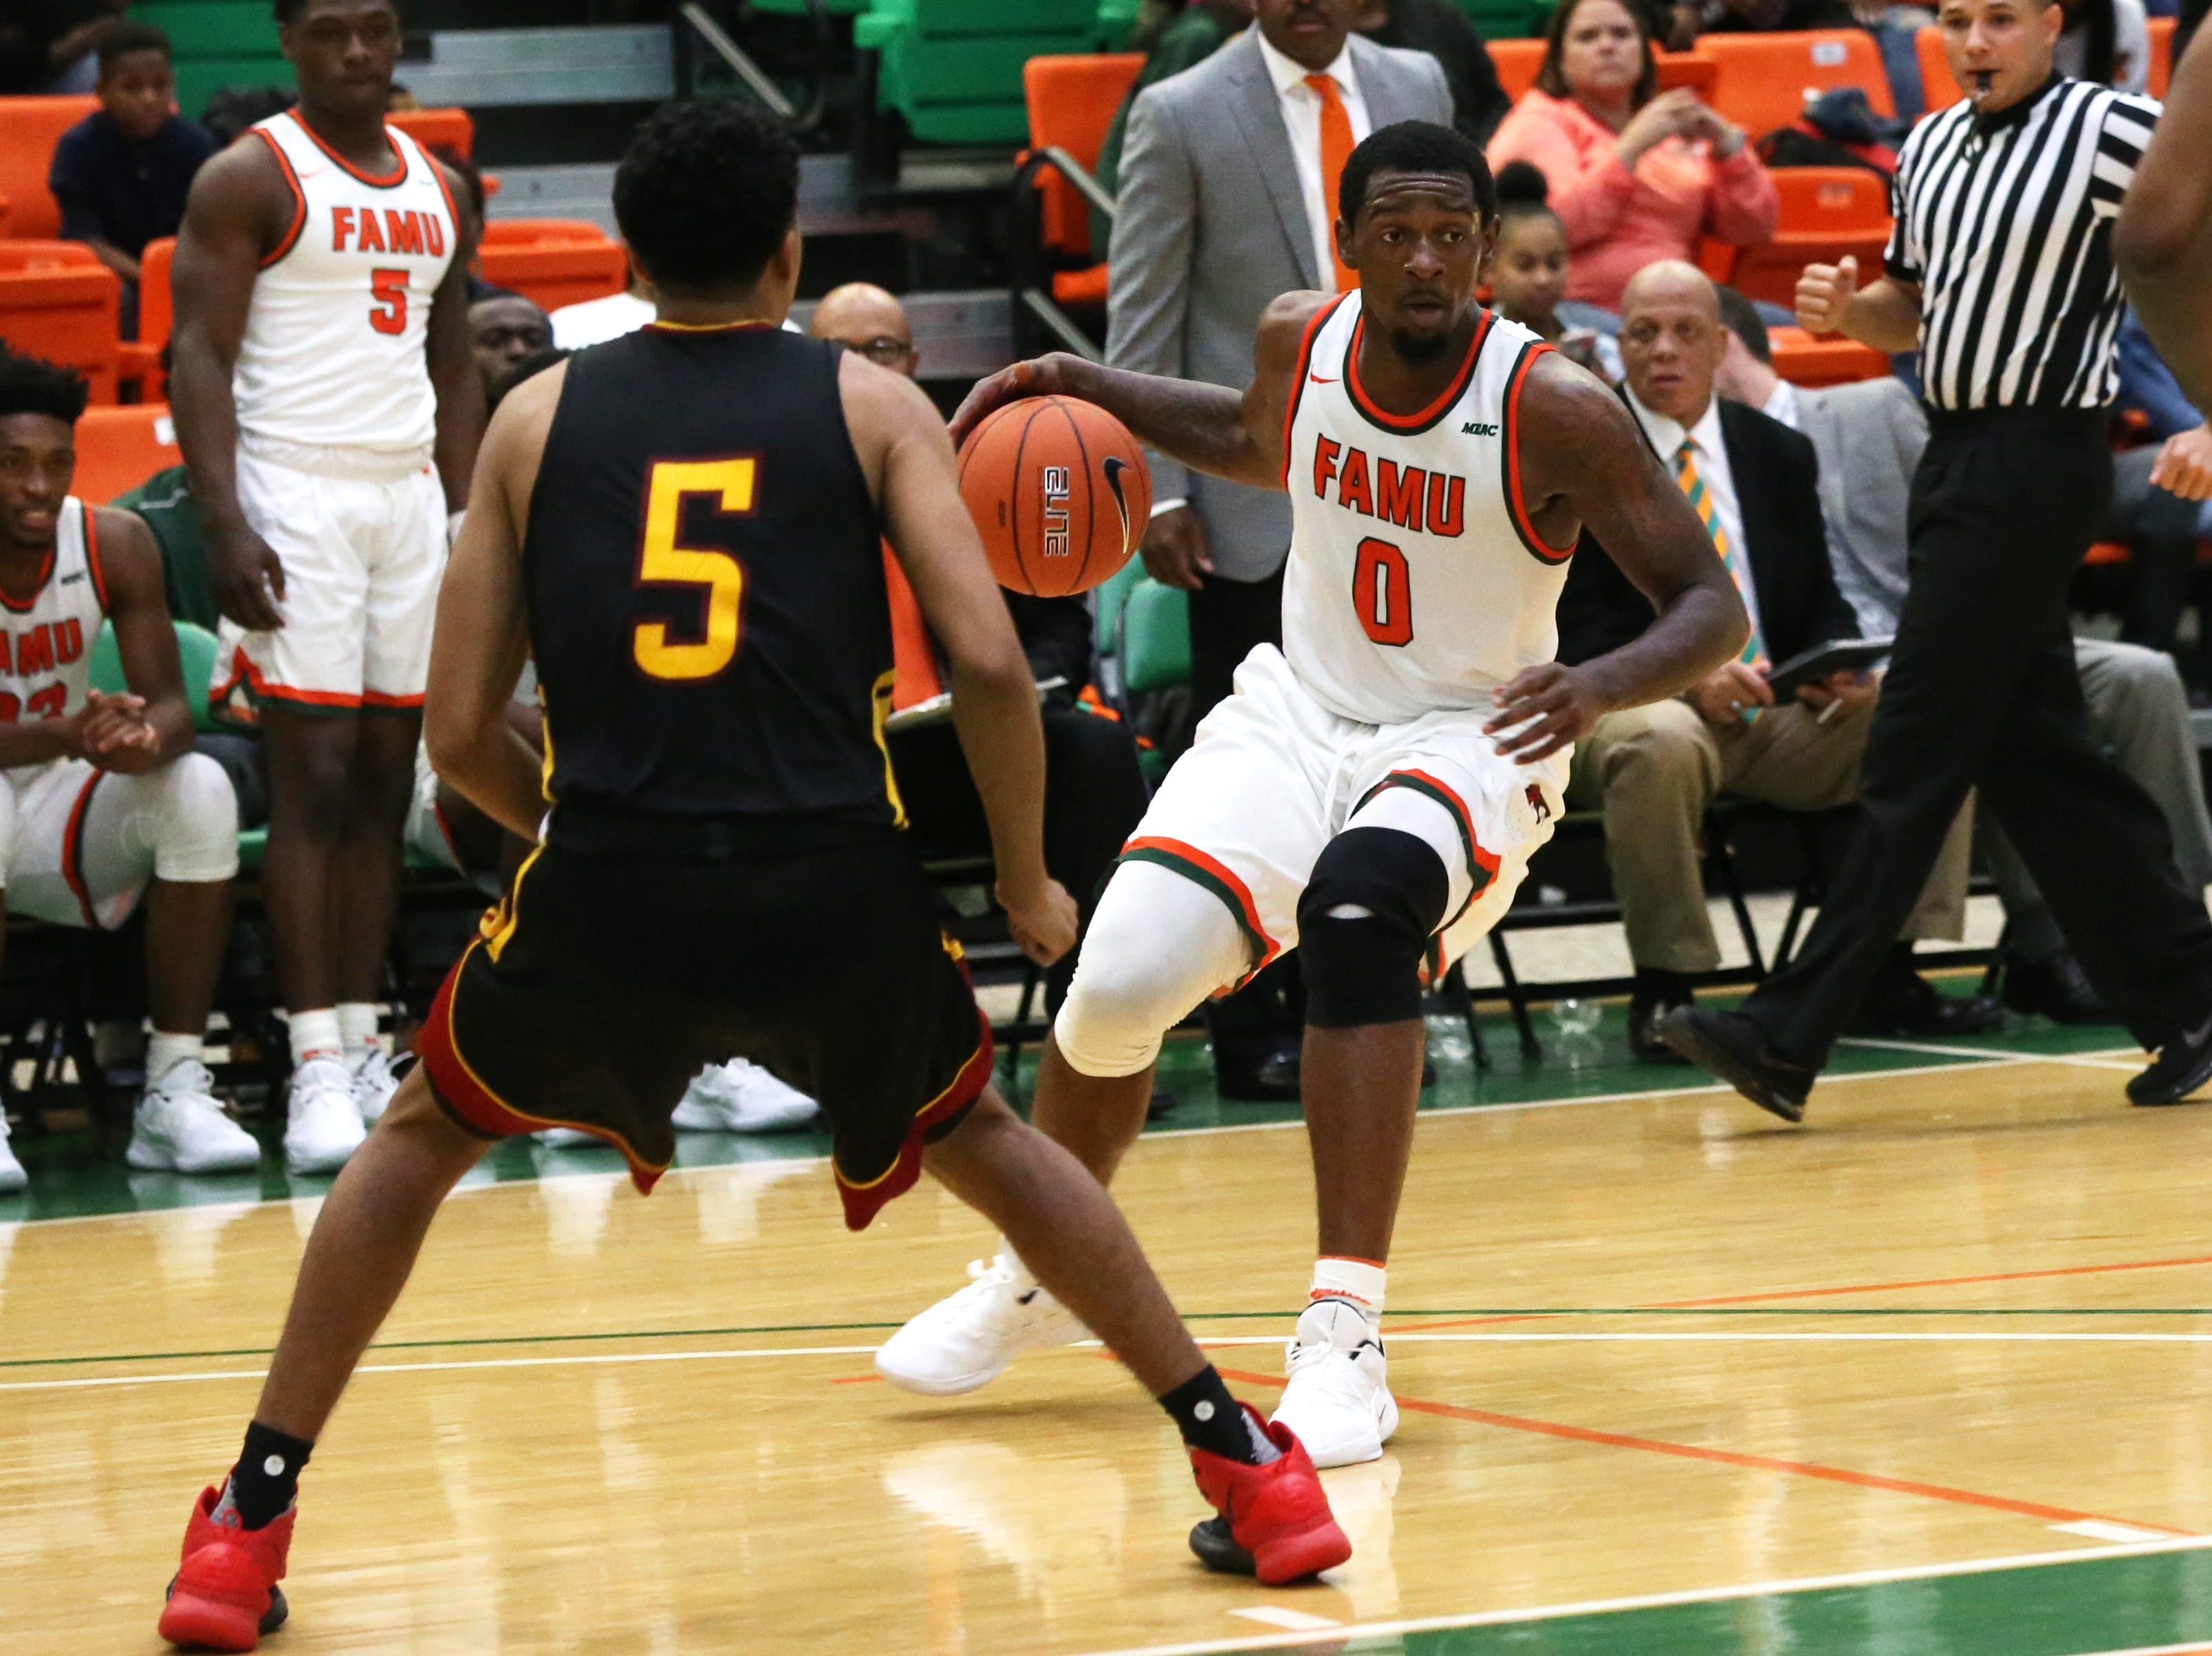 Florida A&M Rattlers forward Tracy Hector Jr. (0) looks to figure out his next move as the FAMU Rattlers take on the Tuskegee Golden Tigers in their first home game of the season in the Lawson Center, Saturday, Nov. 10, 2018.